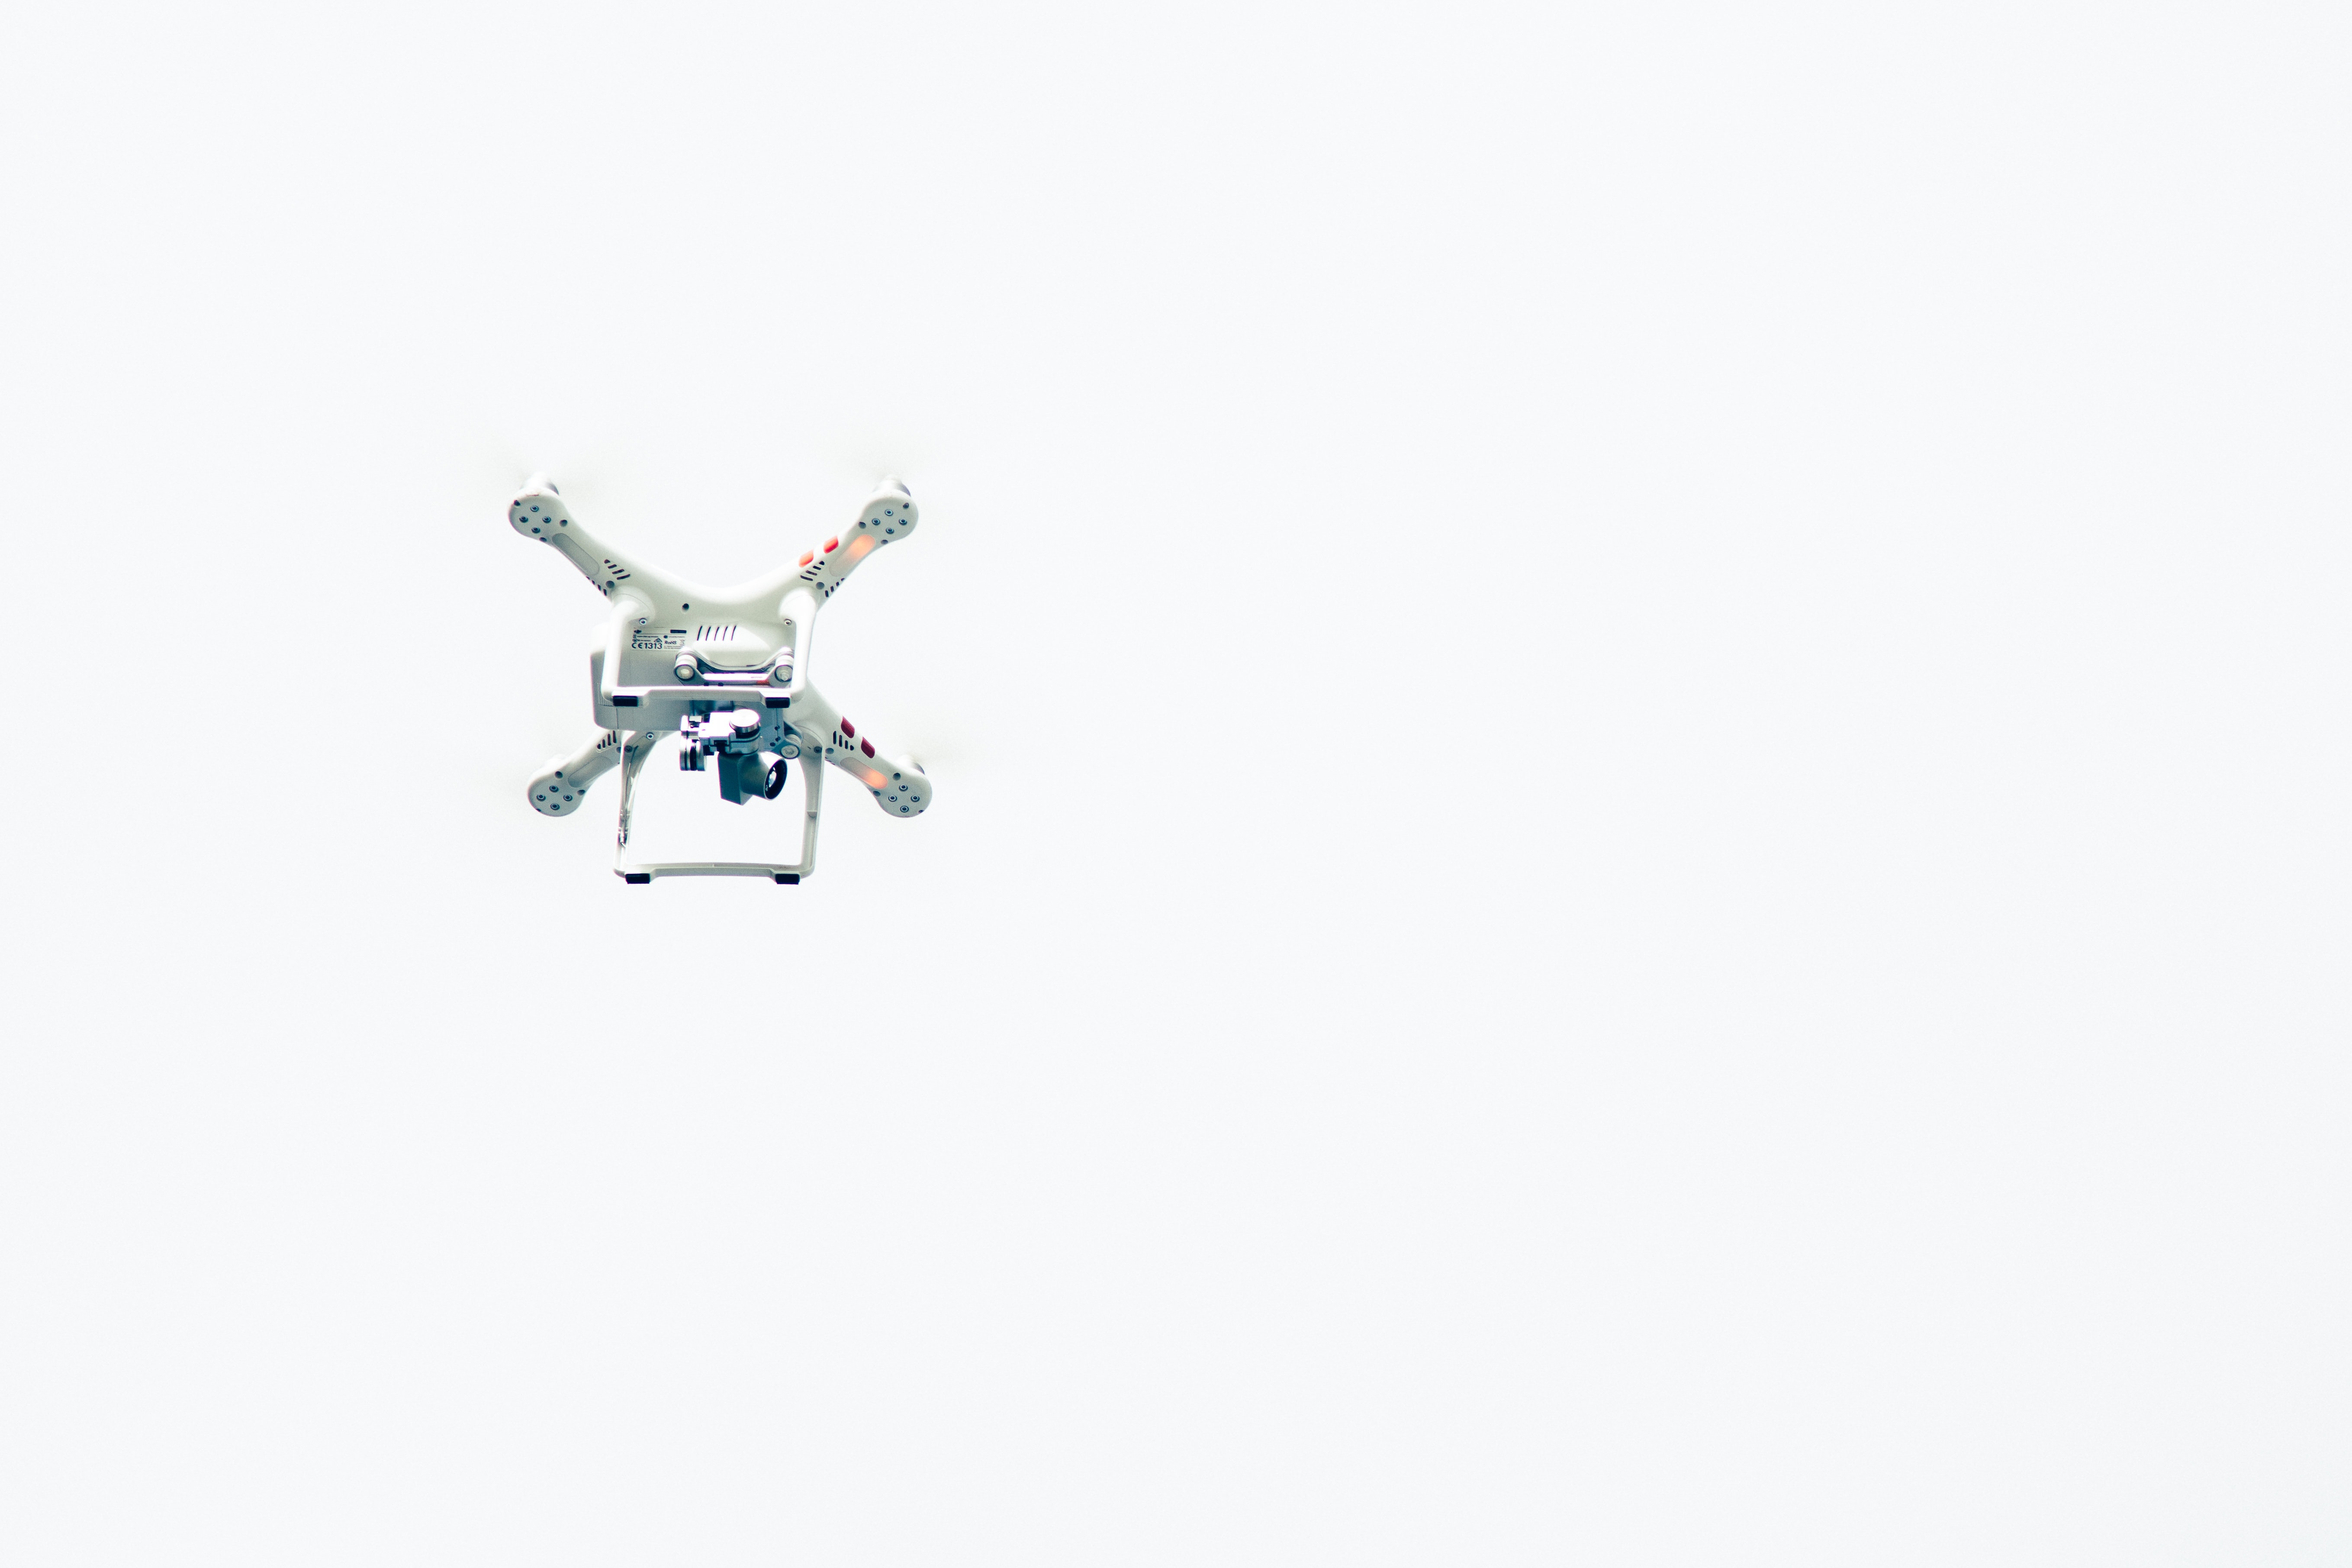 White quadcopter photo